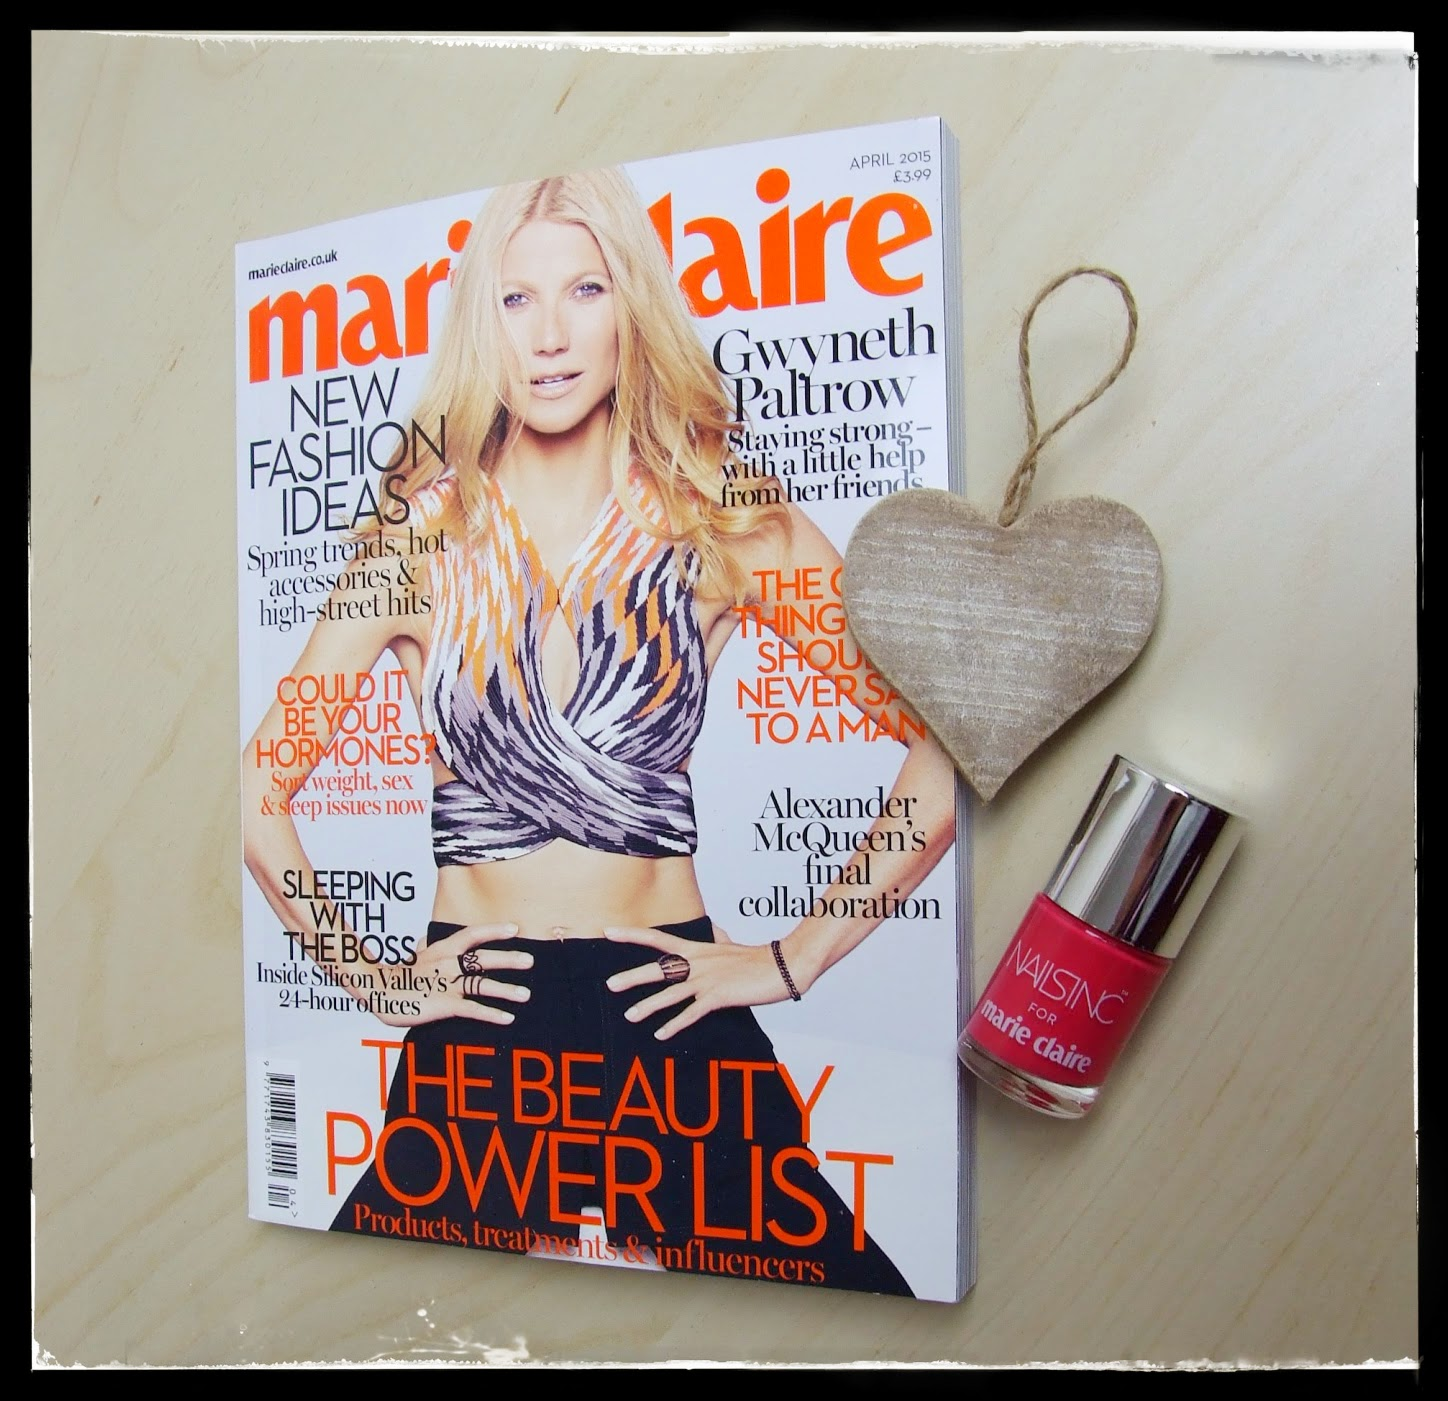 marie claire March 2015 magazine freebies nails inc nail varnish fiesta fizz fashion festival